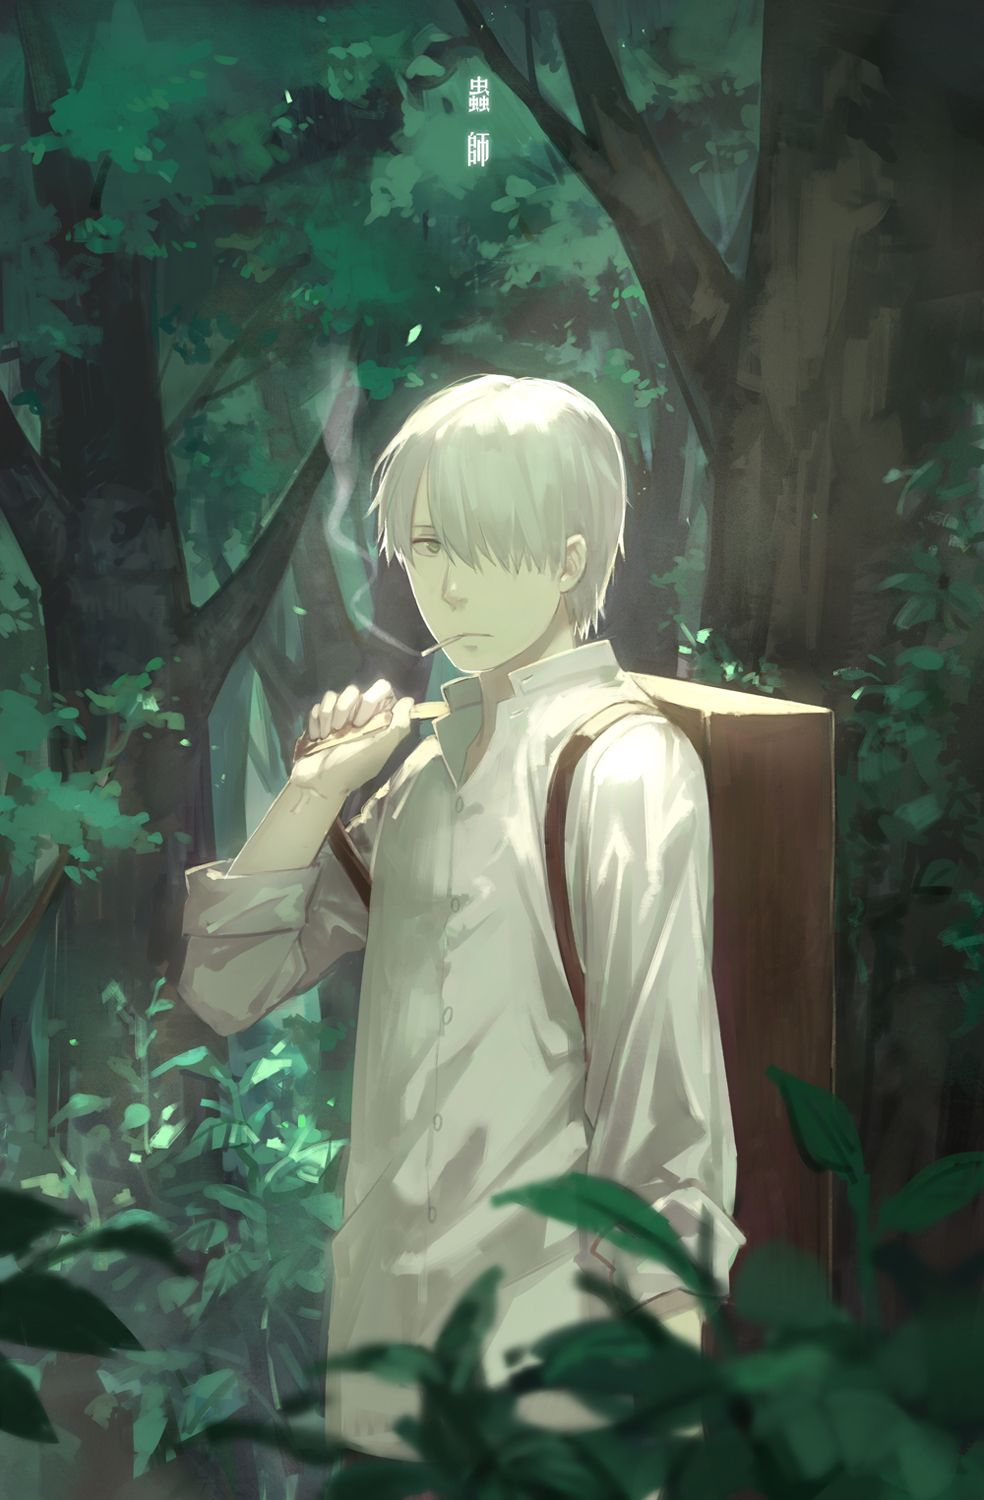 Mushishi Zoku Shou 2nd Season Review Finals, Anime and Manga